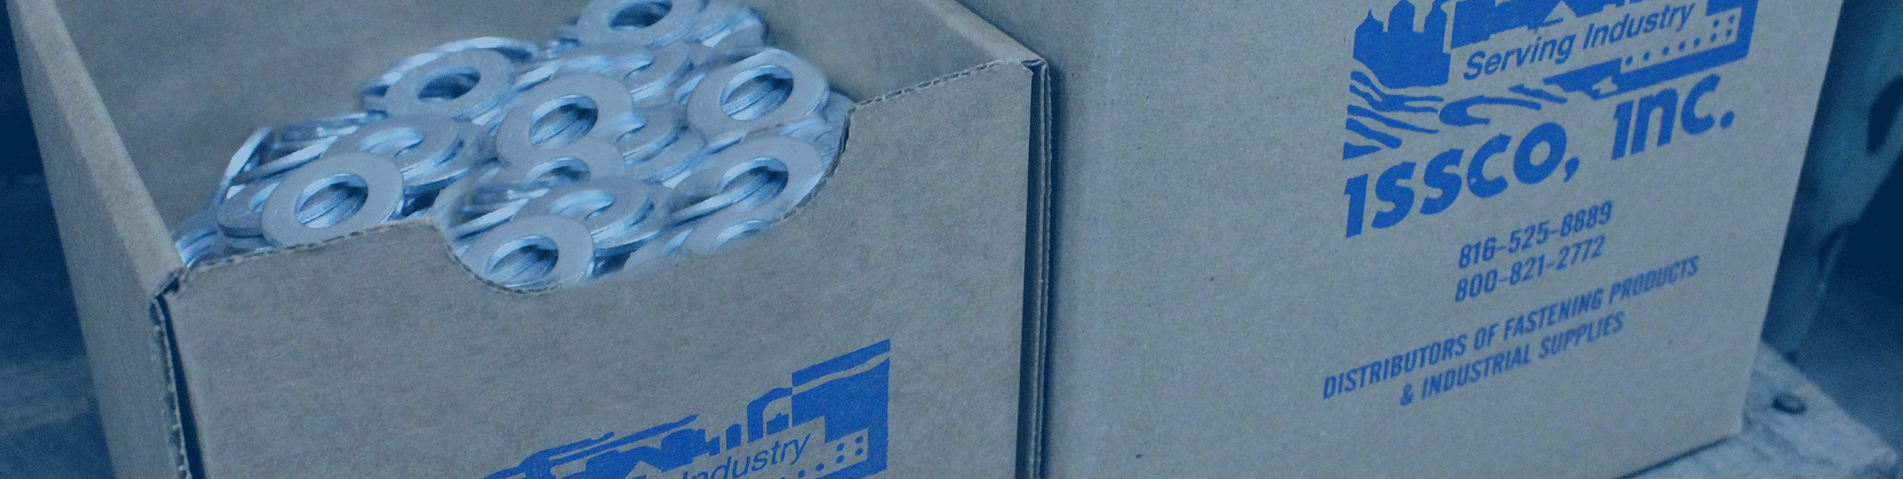 fasteners in an ISSCO brand box